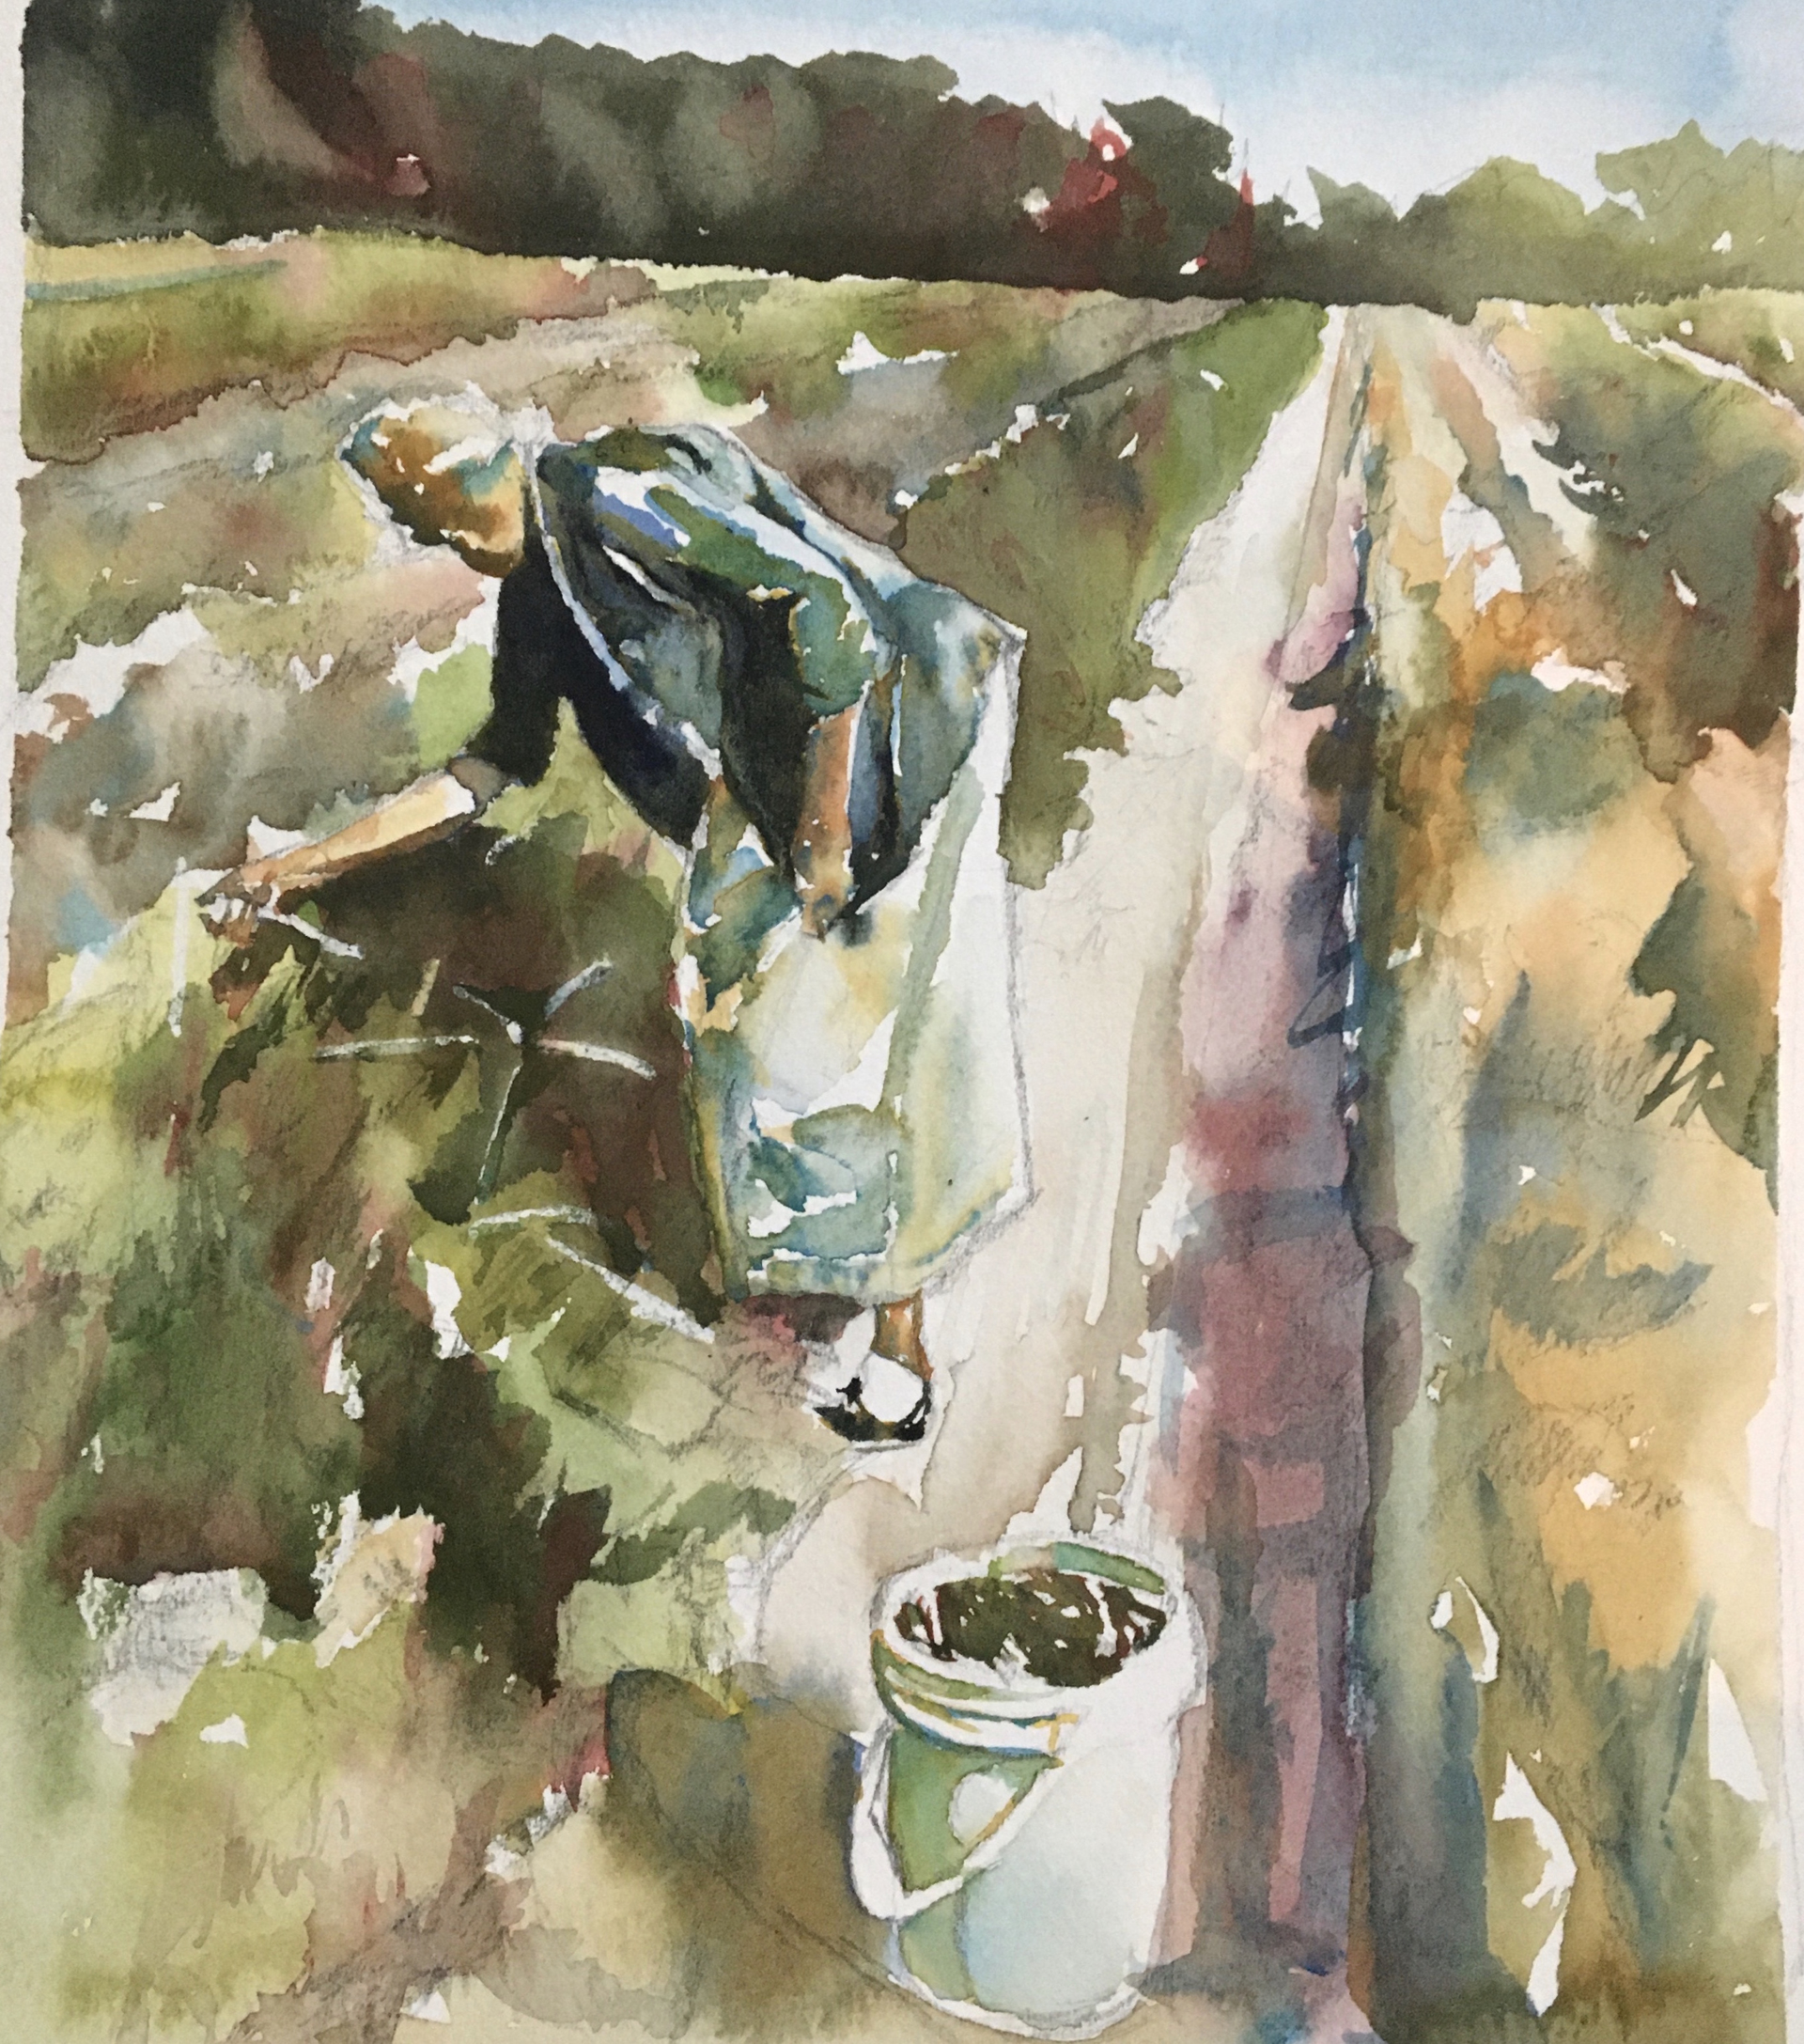 Pickin' Peas by Ment Nelson